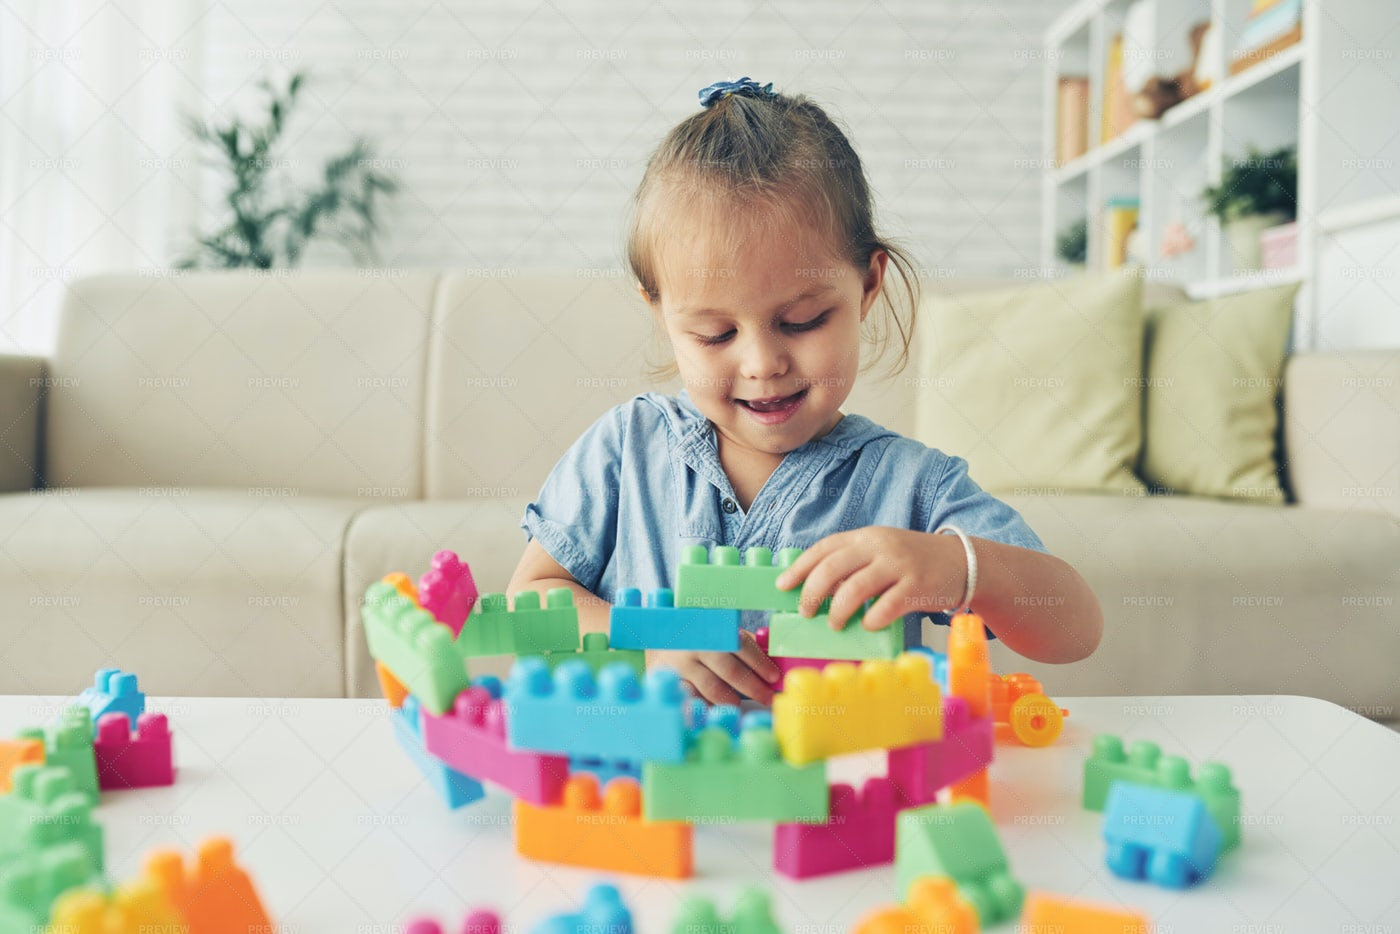 Playing With Construction Blocks: Stock Photos